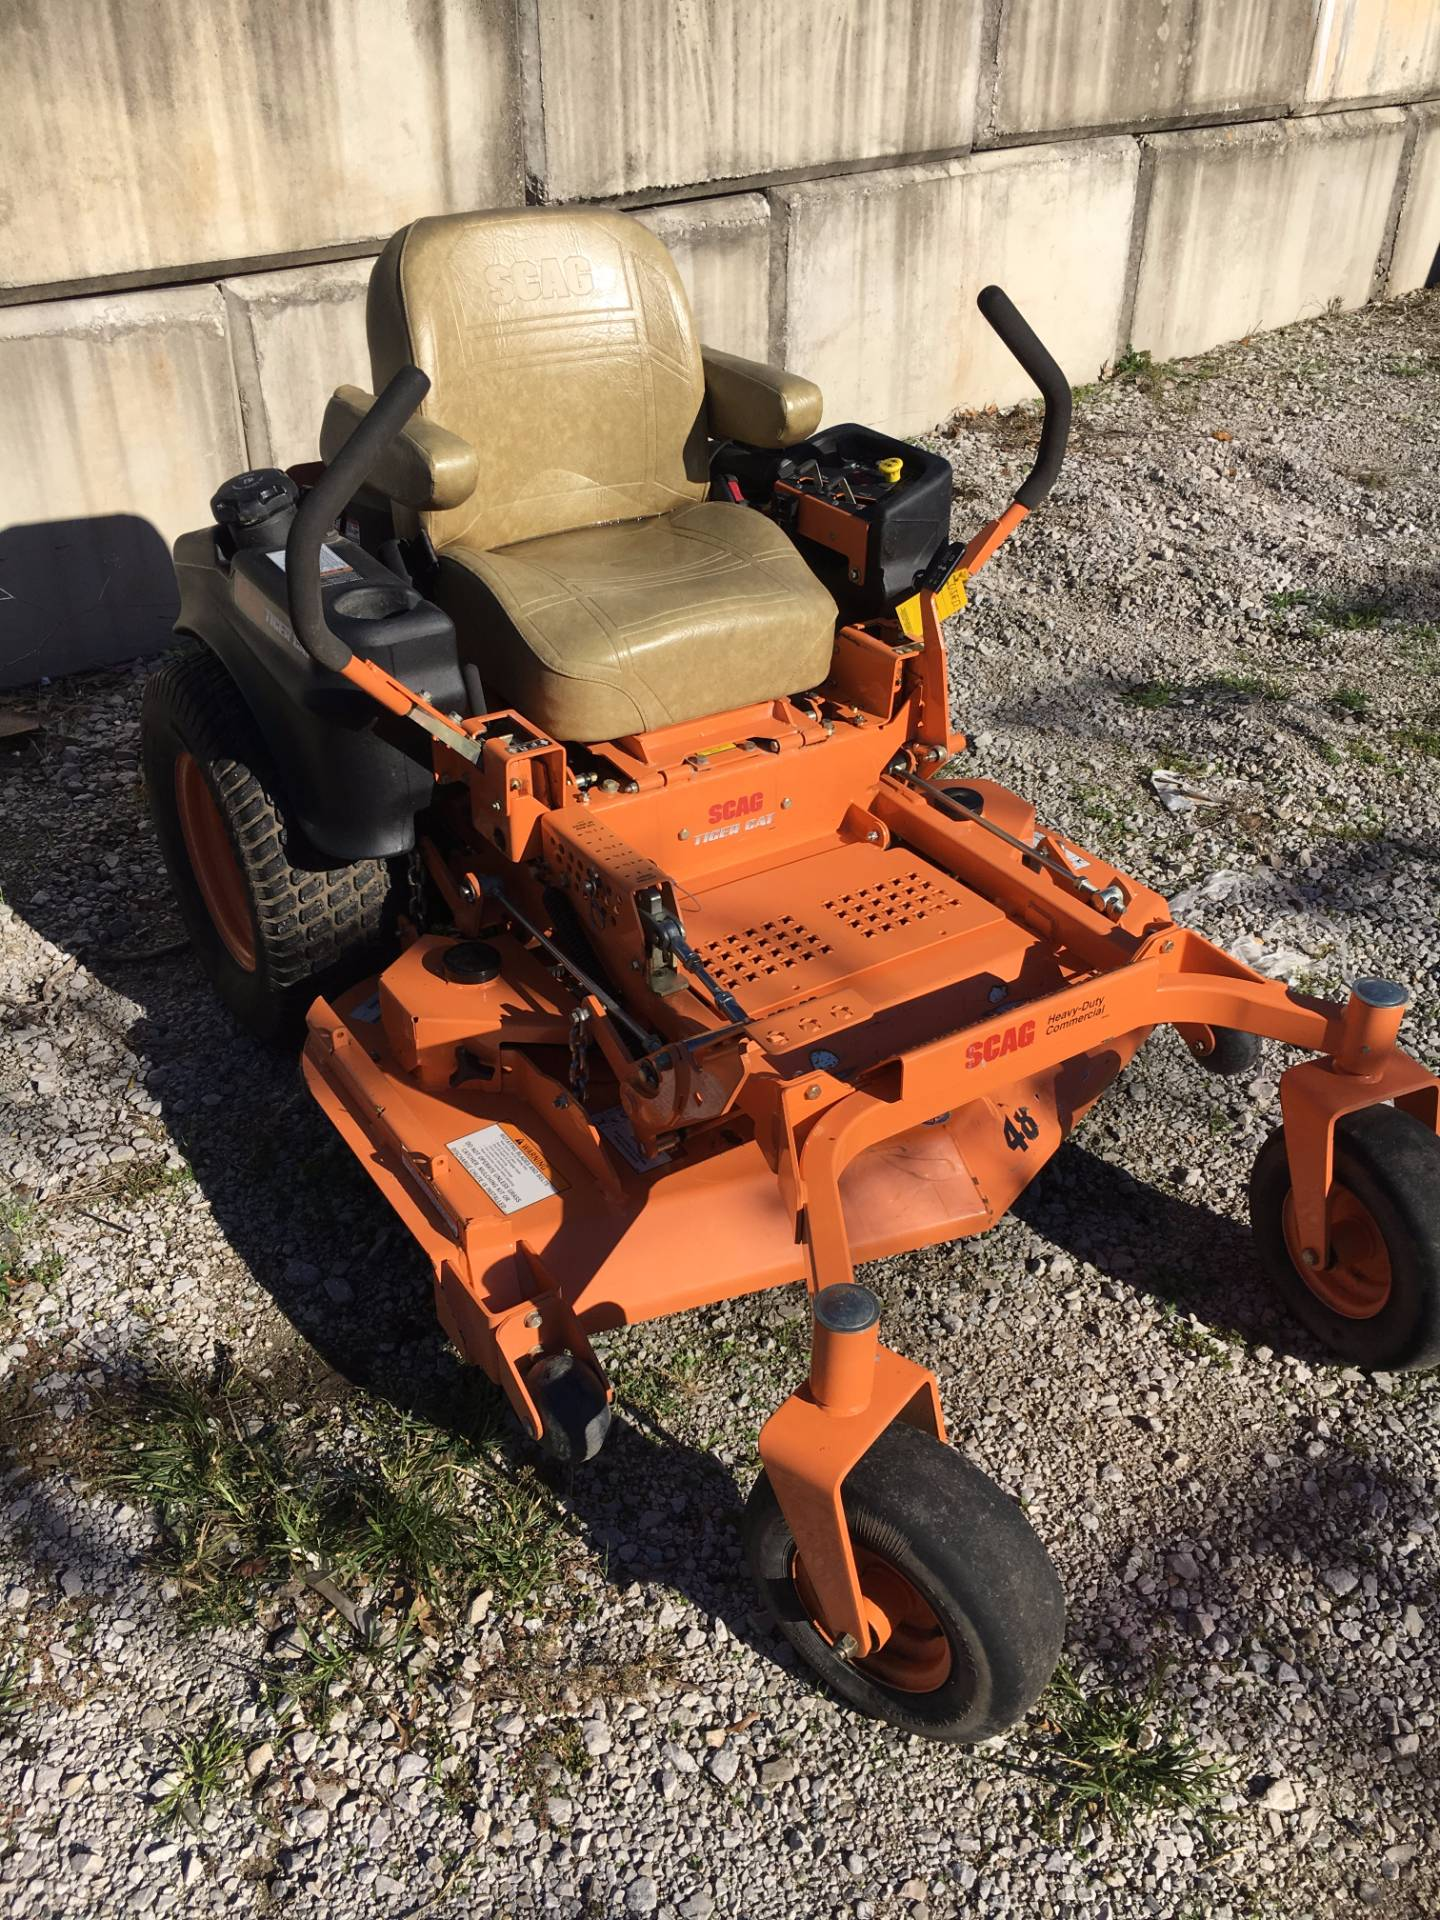 used 2013 scag power equipment tiger cat 26 hp 48 lawn mowers riding in terre haute in. Black Bedroom Furniture Sets. Home Design Ideas